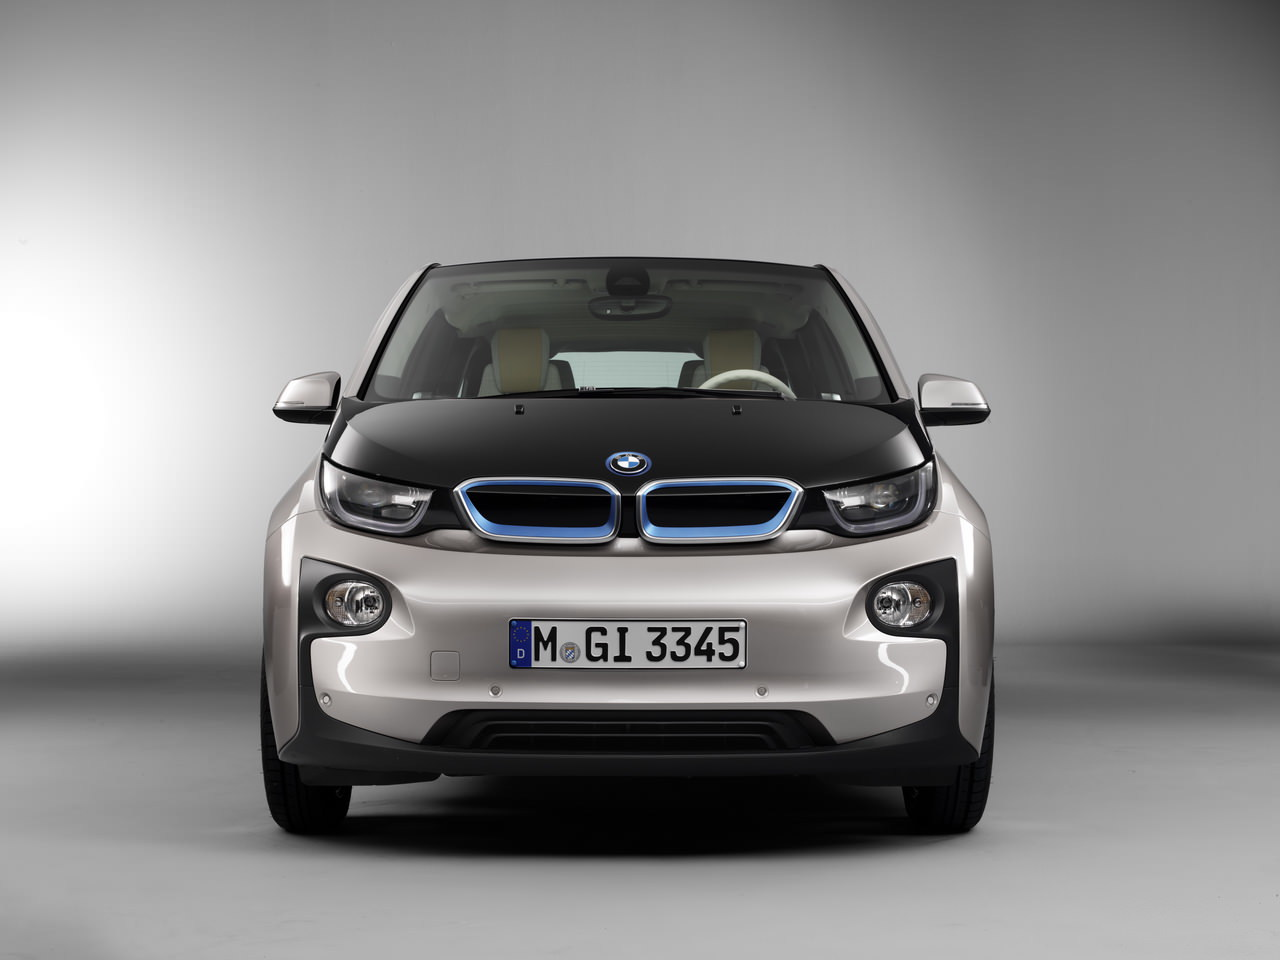 dimensions motorisations prix la bmw i3 se d voile. Black Bedroom Furniture Sets. Home Design Ideas